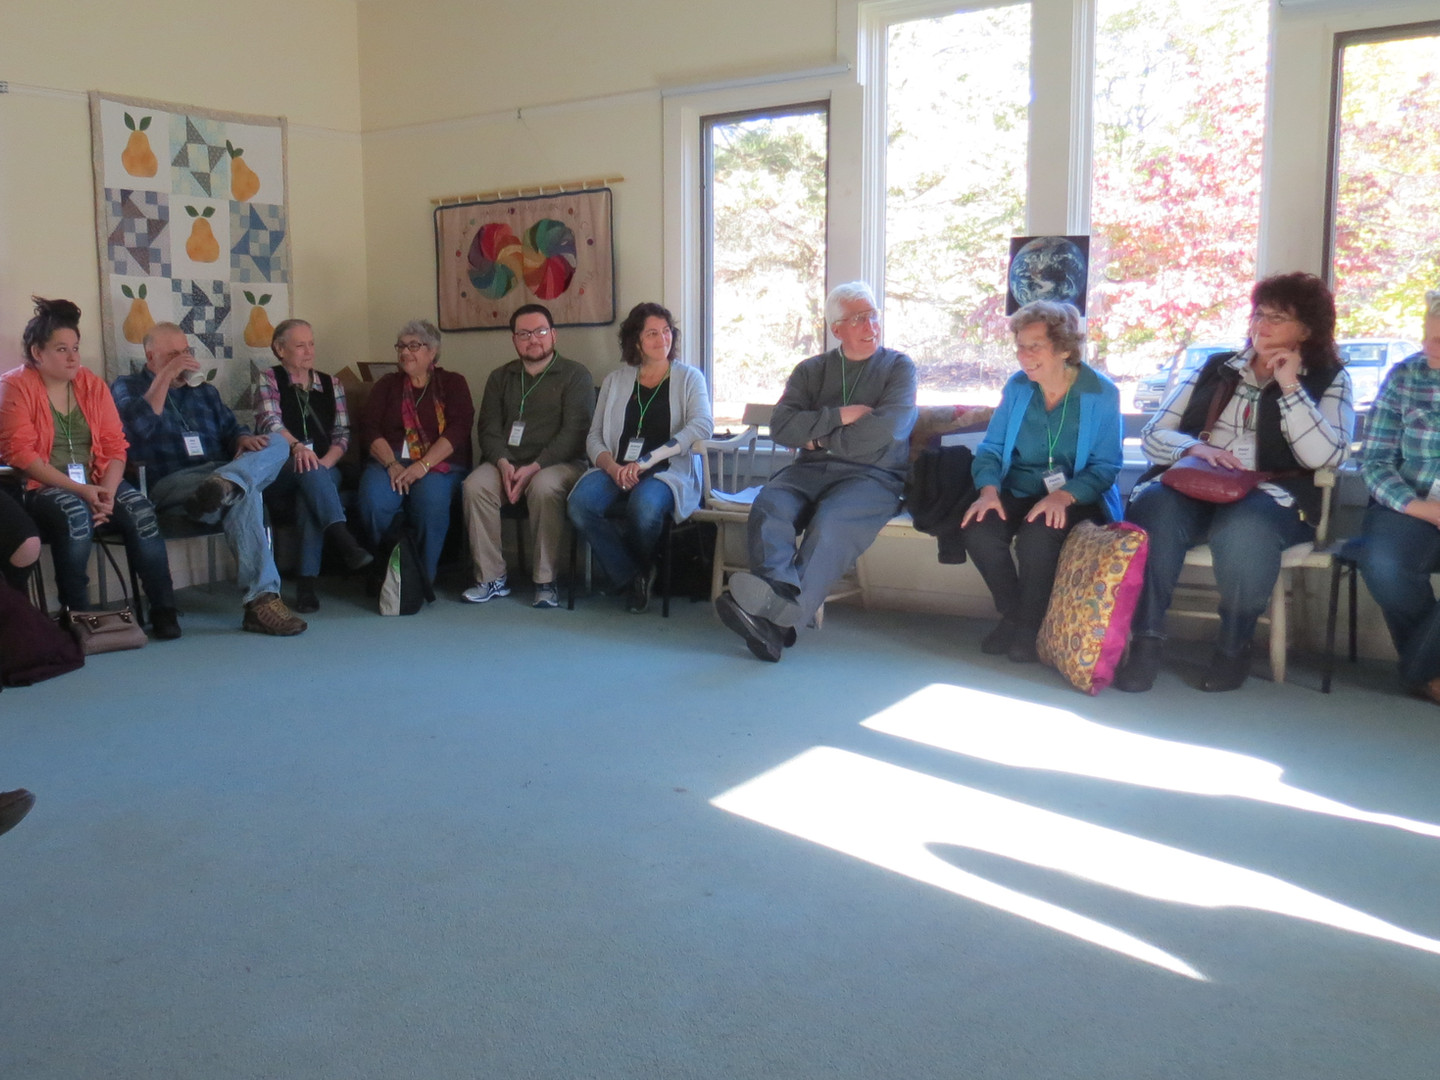 First whole meeting Friday morning at Leverett Friends Meeting